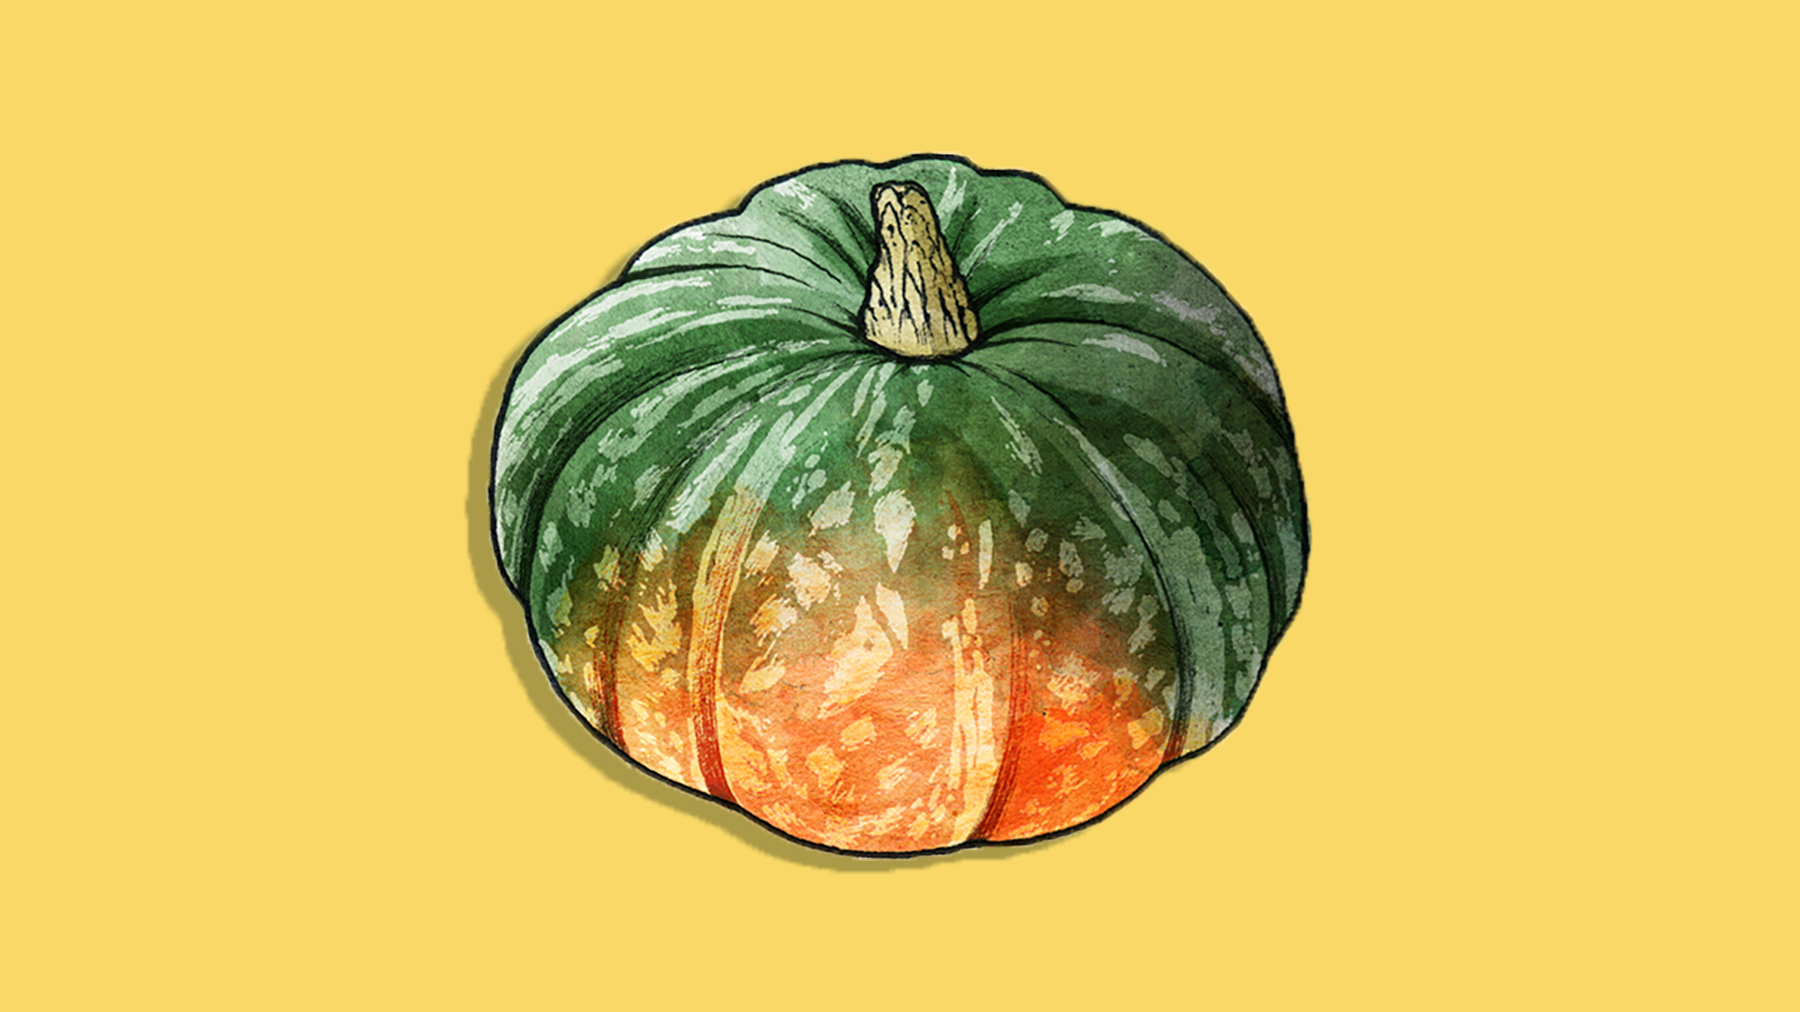 Types of winter squash - picture of squash variety